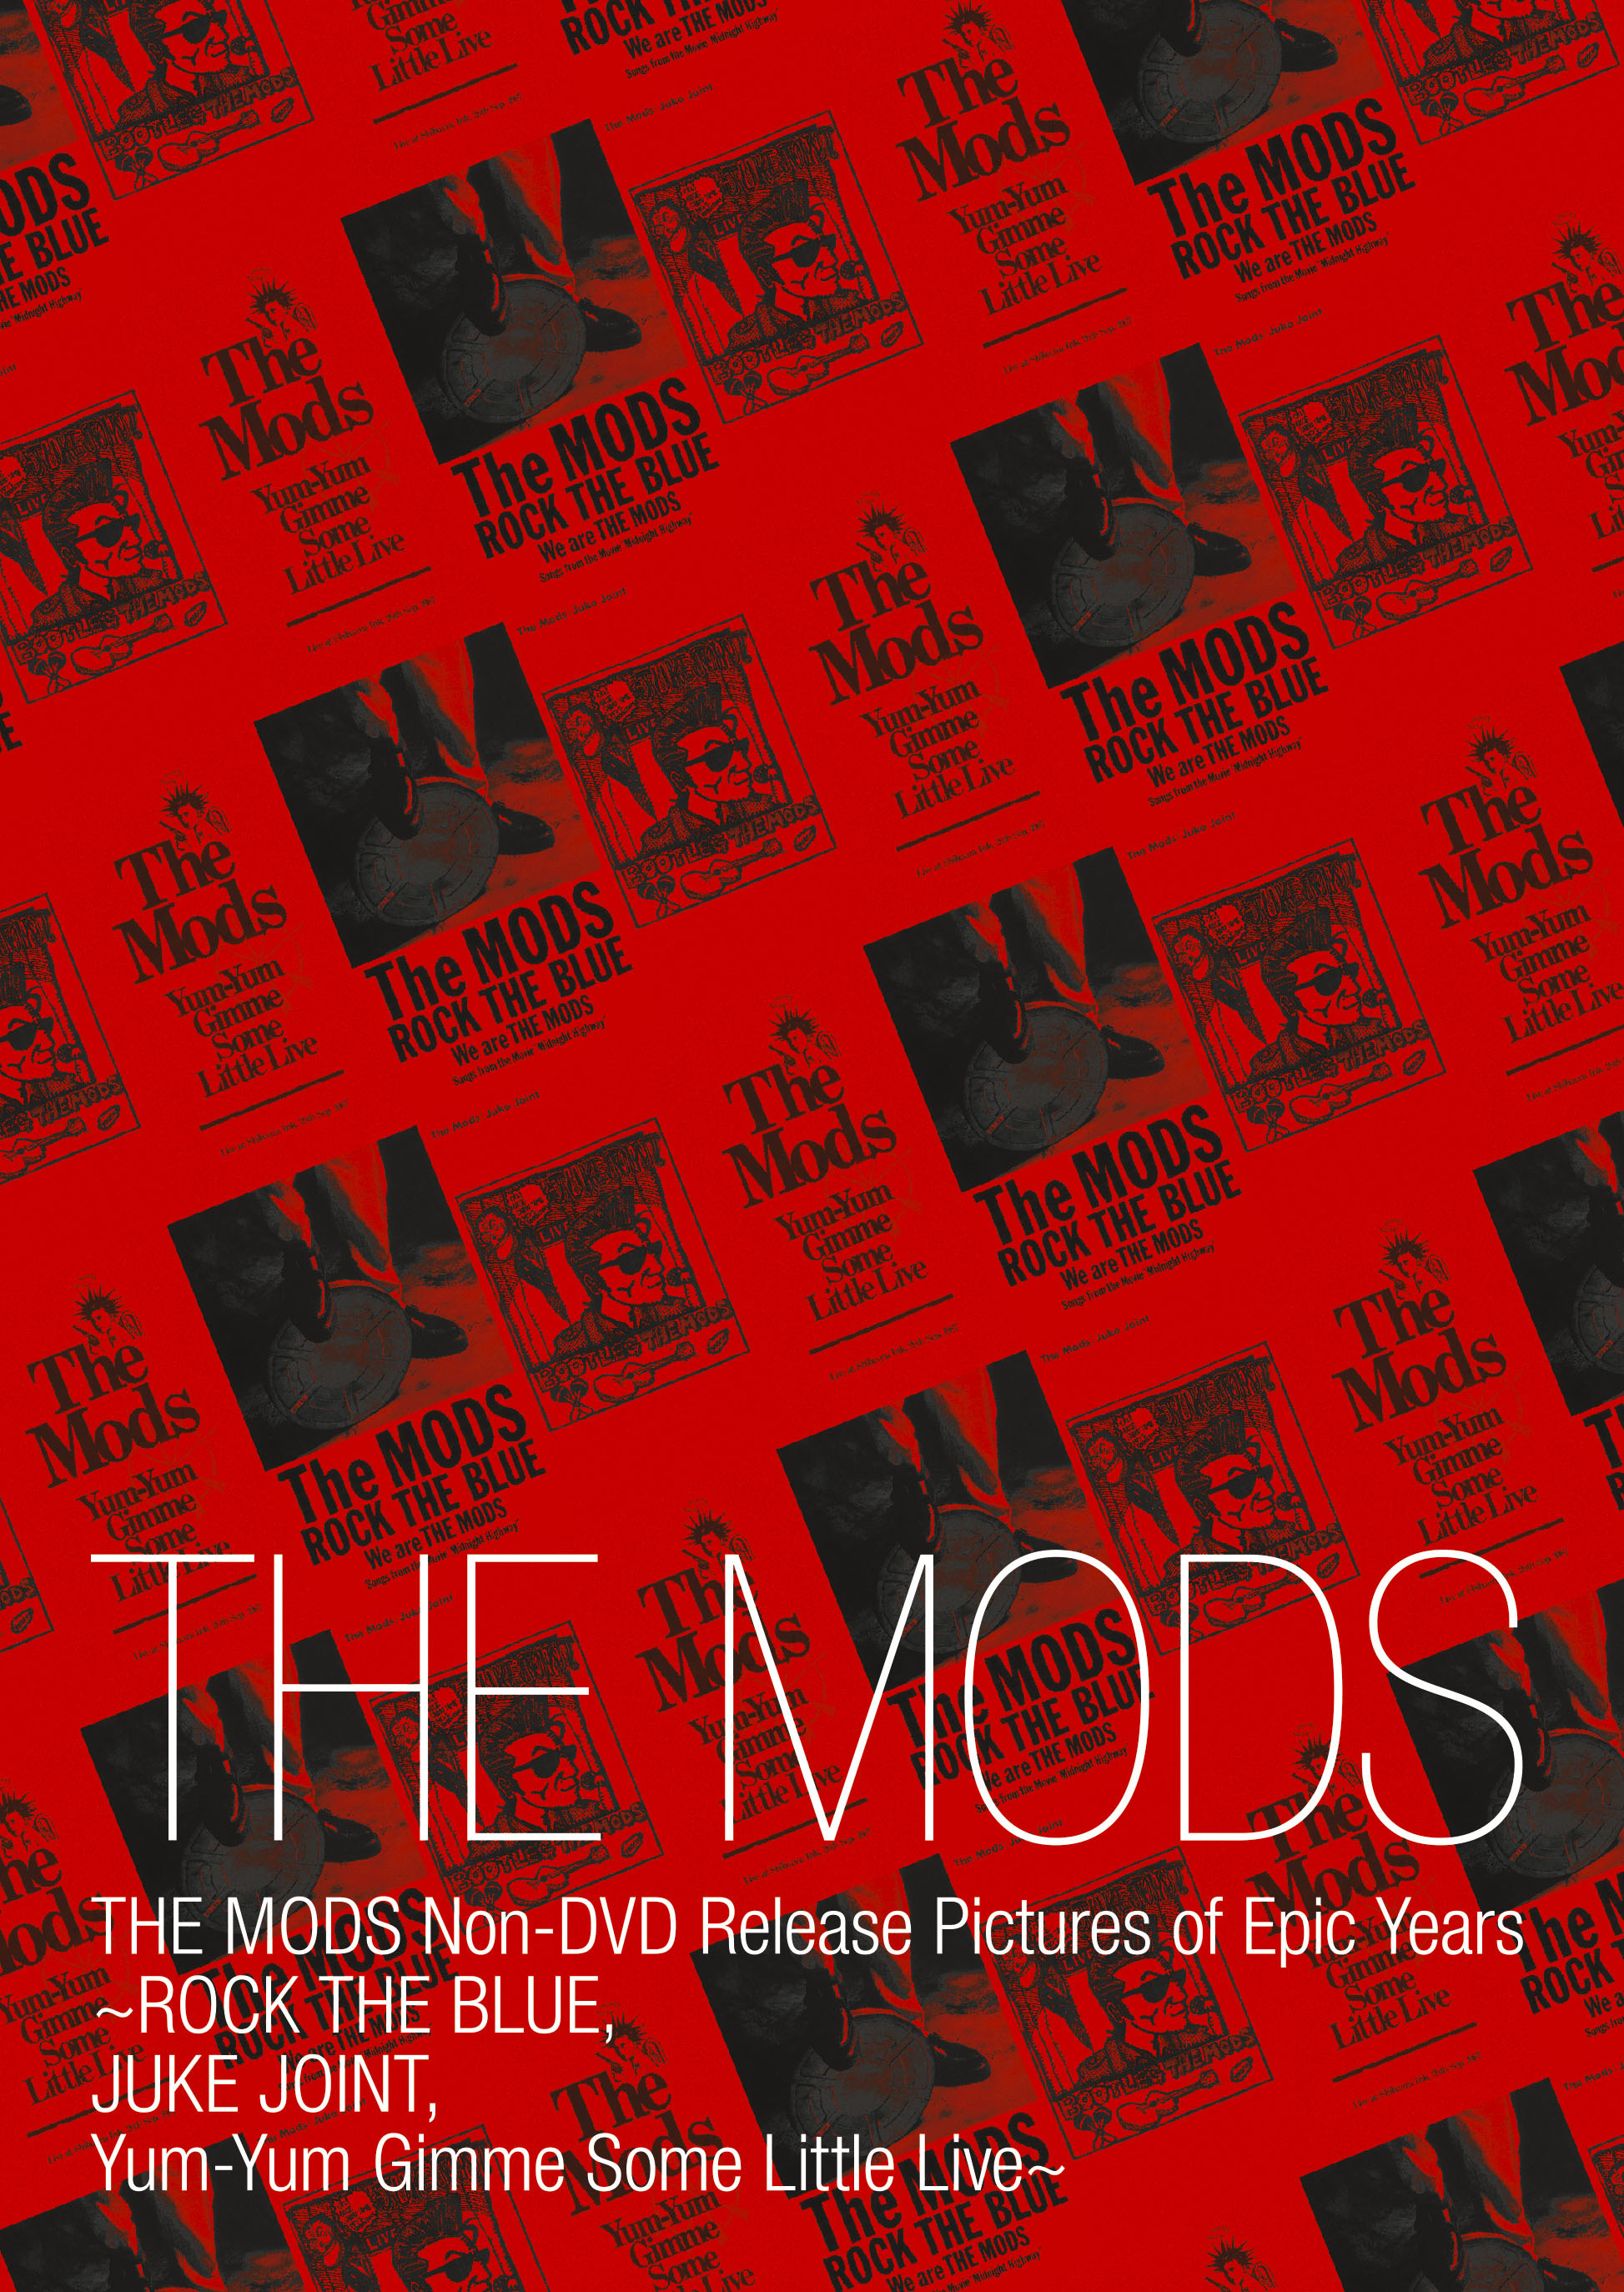 THE MODS Non-DVD Release Pictures of Epic Years